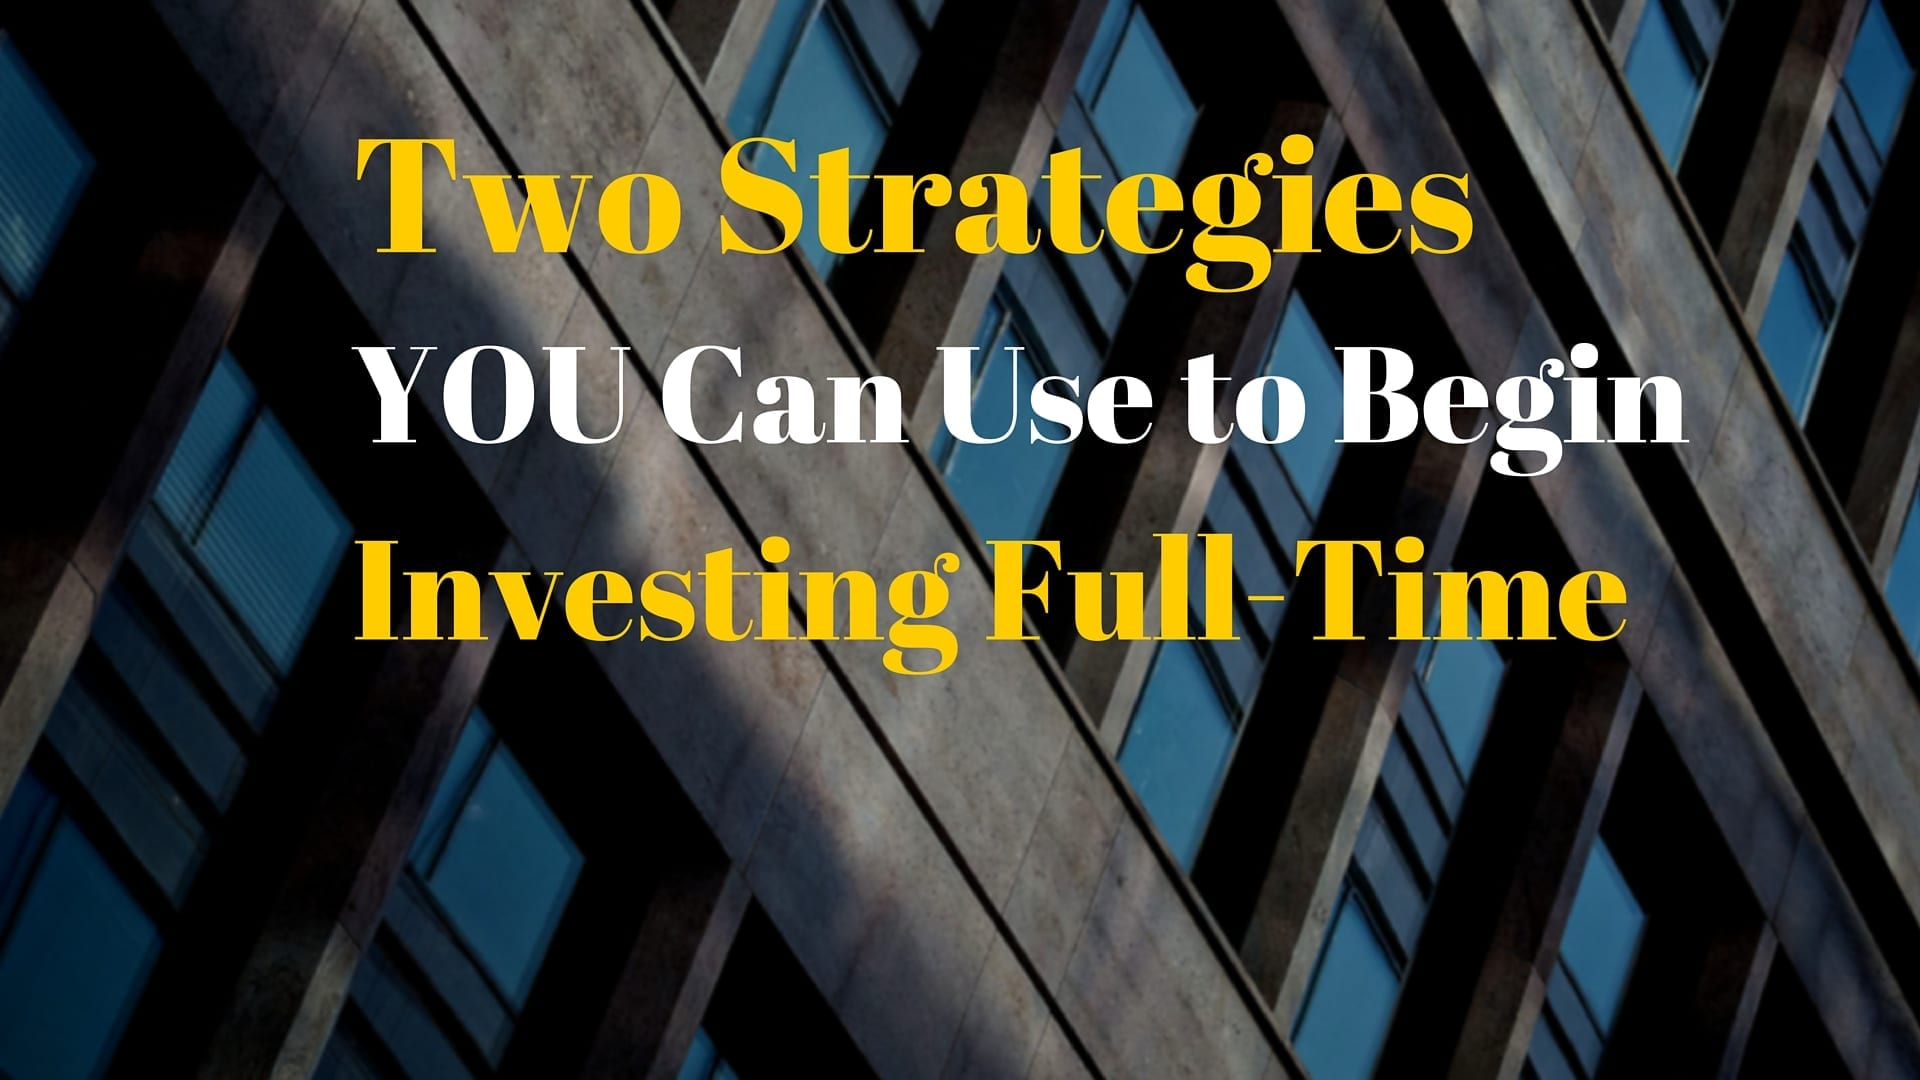 Two Strategies You Can Use to Begin Investing Full-Time